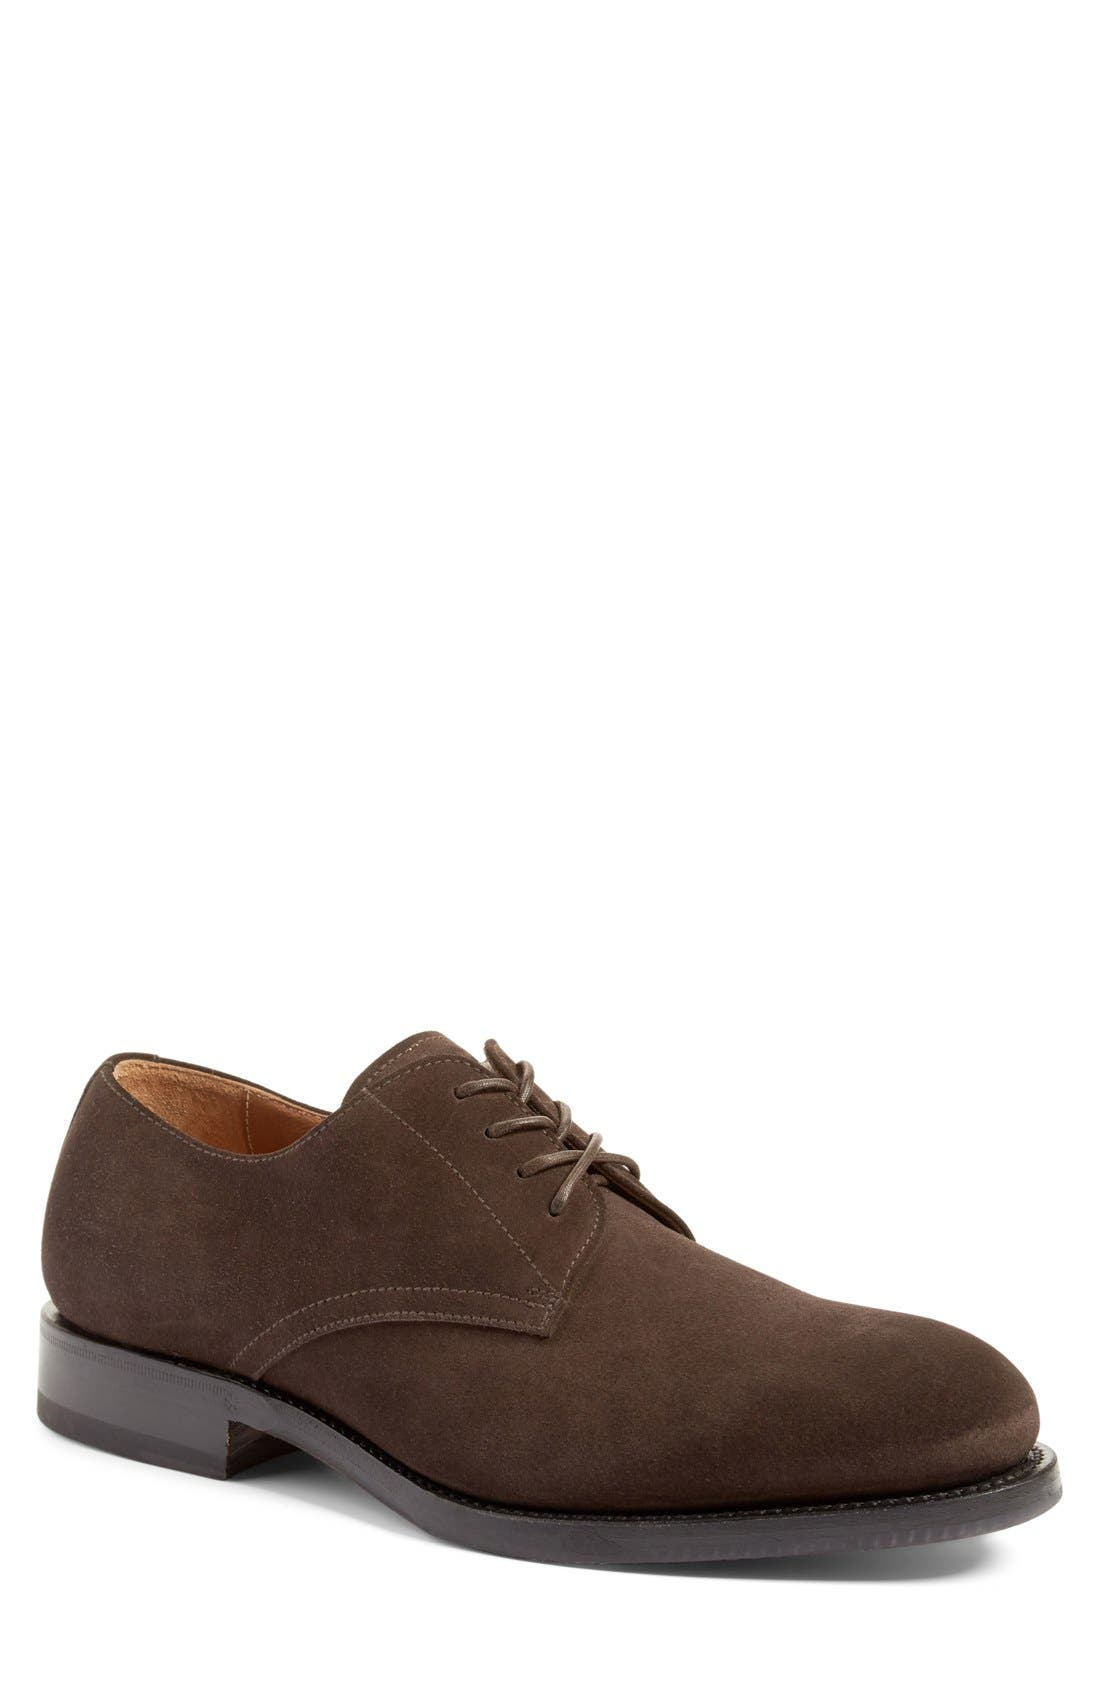 AQUATALIA 'Vance' Plain Toe Derby